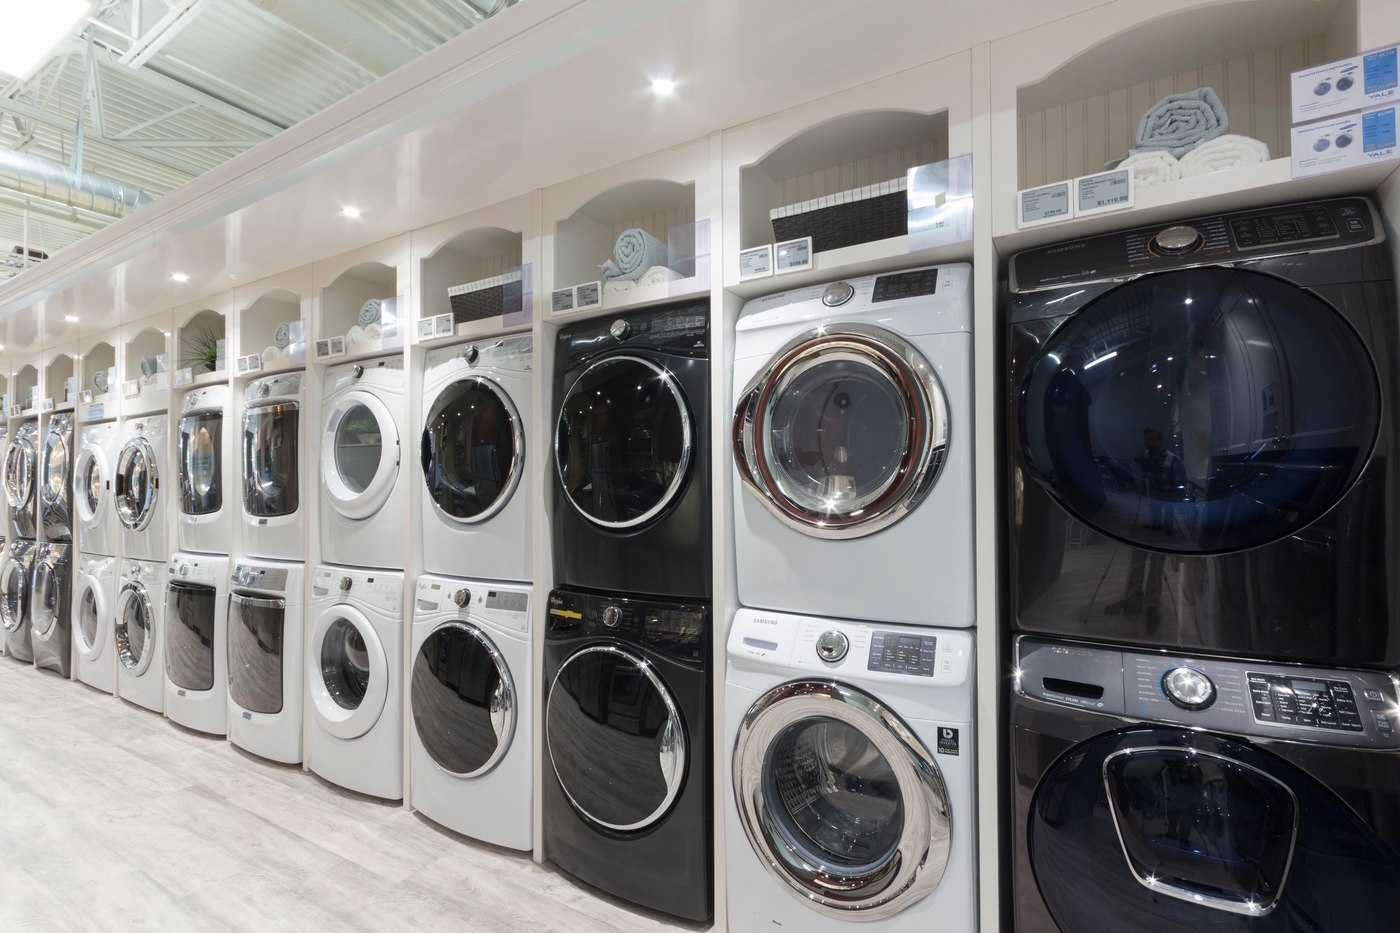 yaleappliance_framingham_25-2.jpg